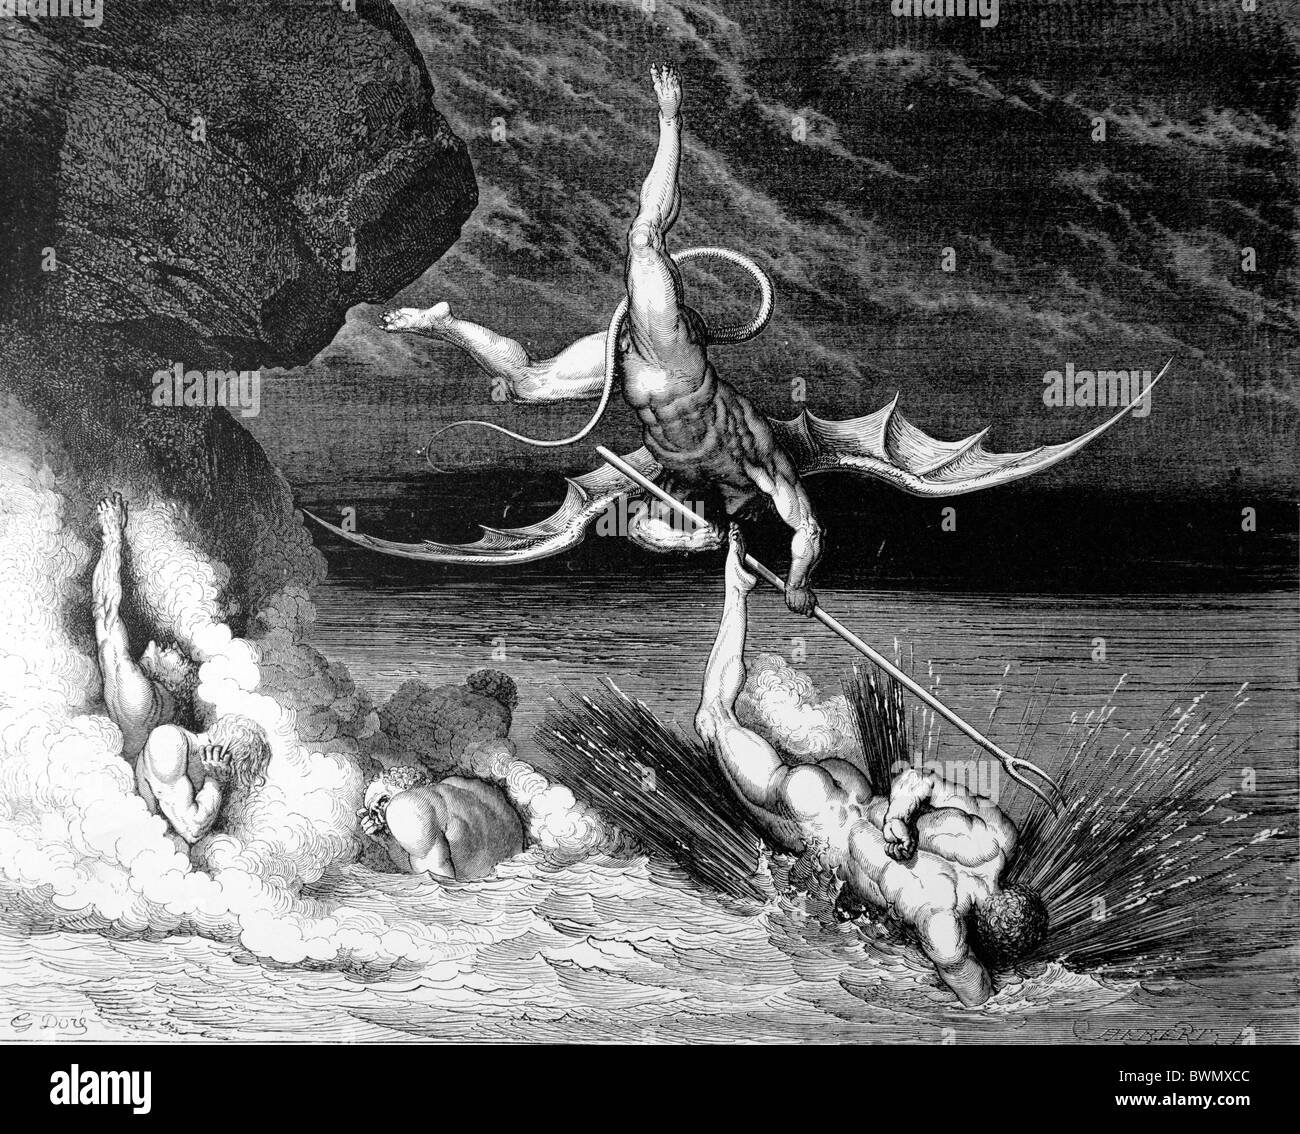 Gustave Doré; A Flight and Pursuit in Hell from Dante Aghlieri's Divine Comedy; Black and White Engraving - Stock Image